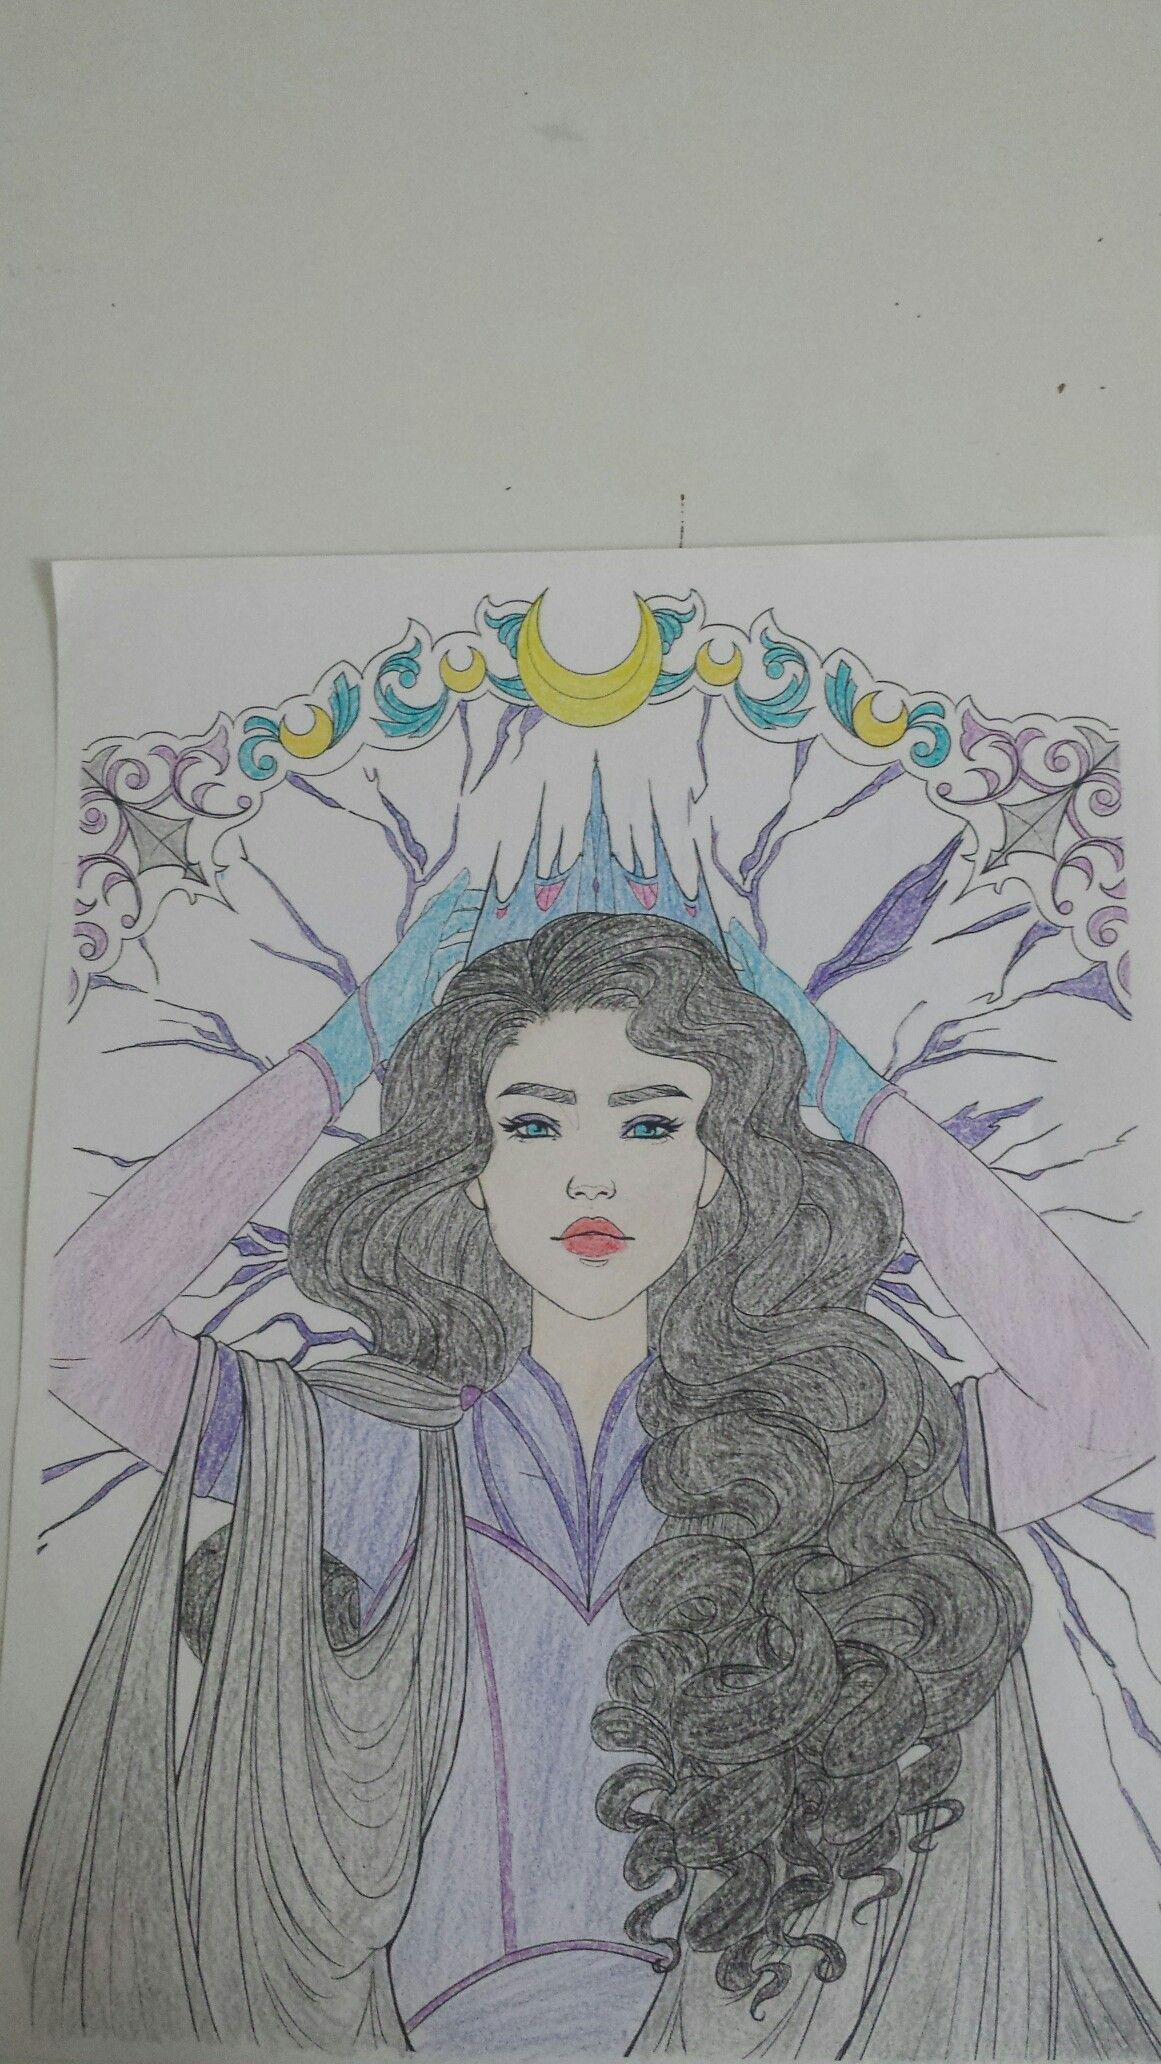 This Is Queen Levana From The Lunar Chronicles By Marissa Meyer I